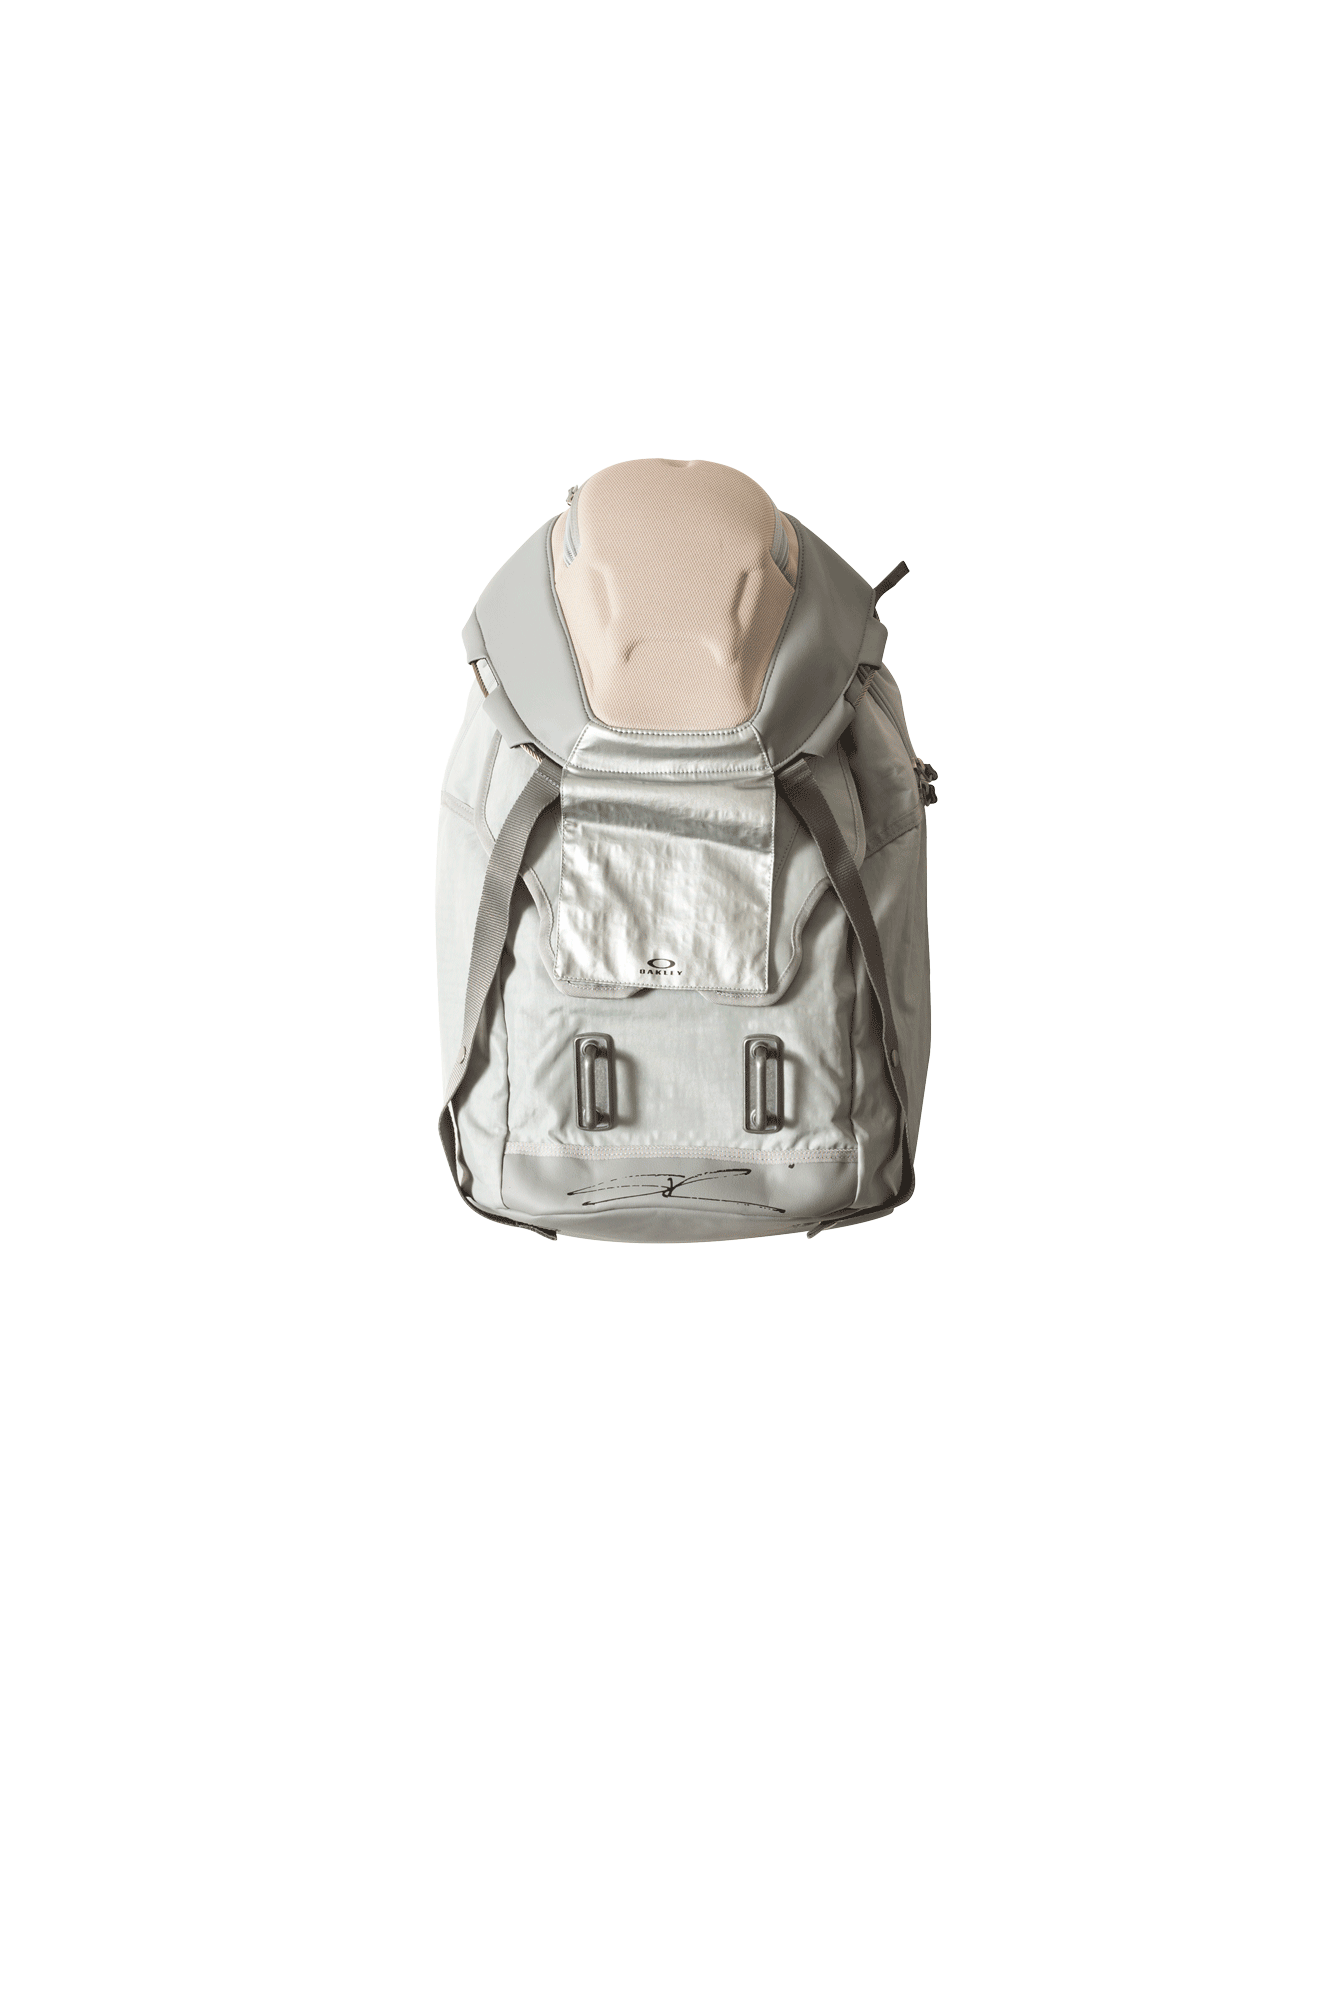 Oakley by Samuel Ross Zaini Metallic Backpack Grigio 921467-22Y#000#C0009#OS - One Block Down